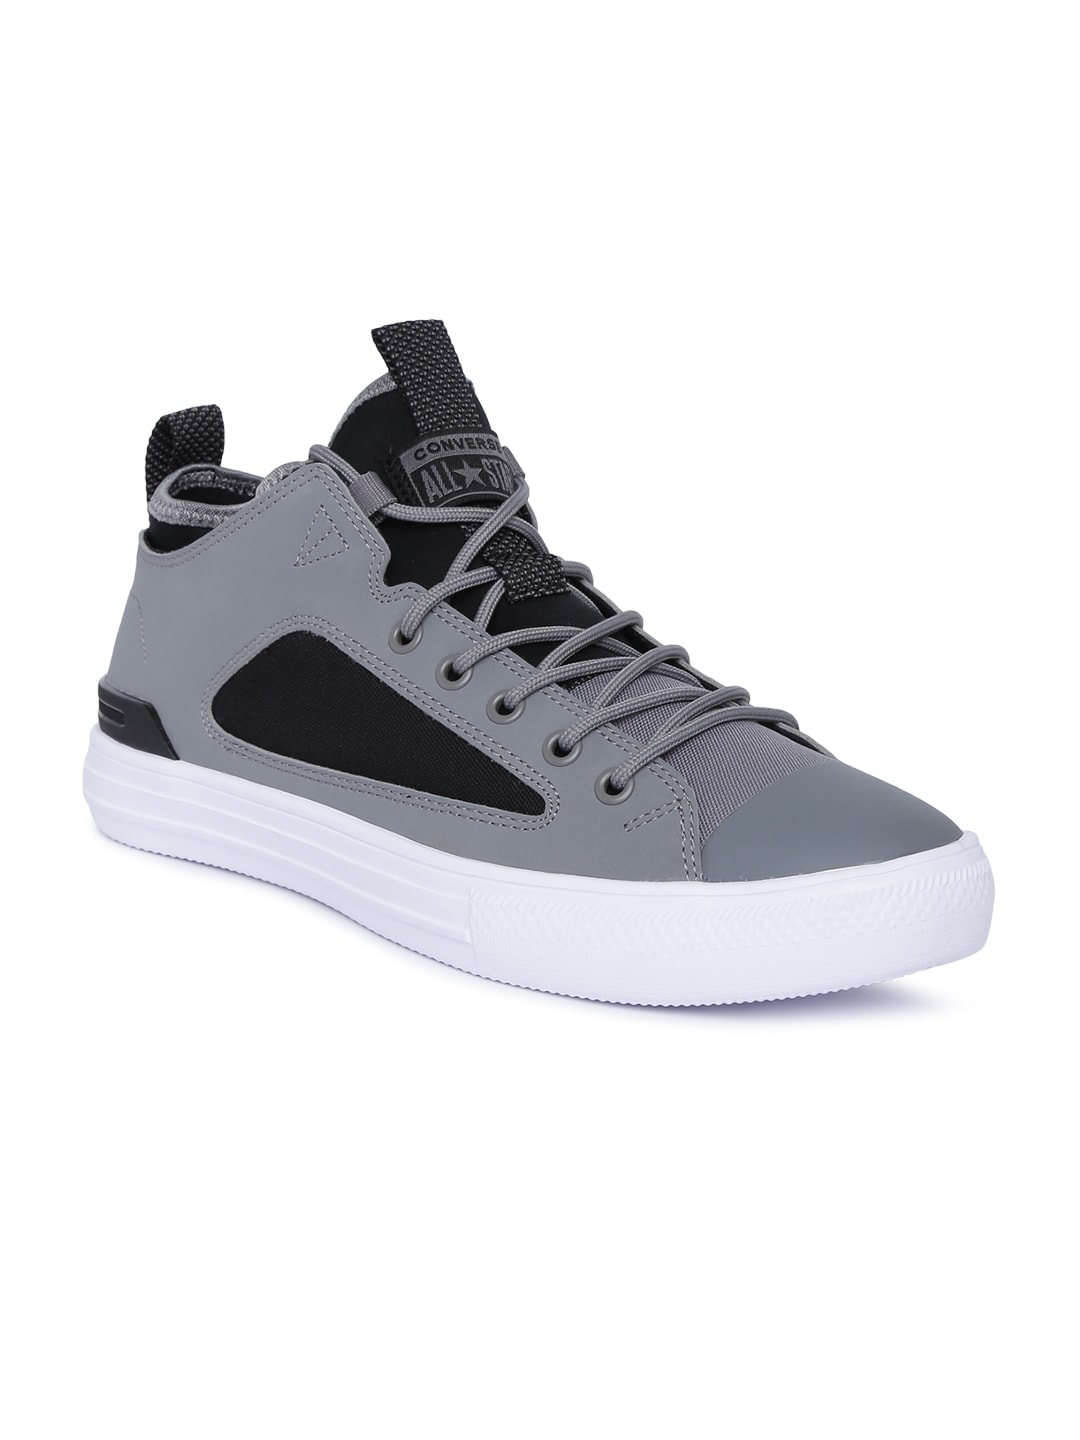 f568f33ae73f Converse Justice League Shoes - Buy Converse Justice League Shoes online in  India